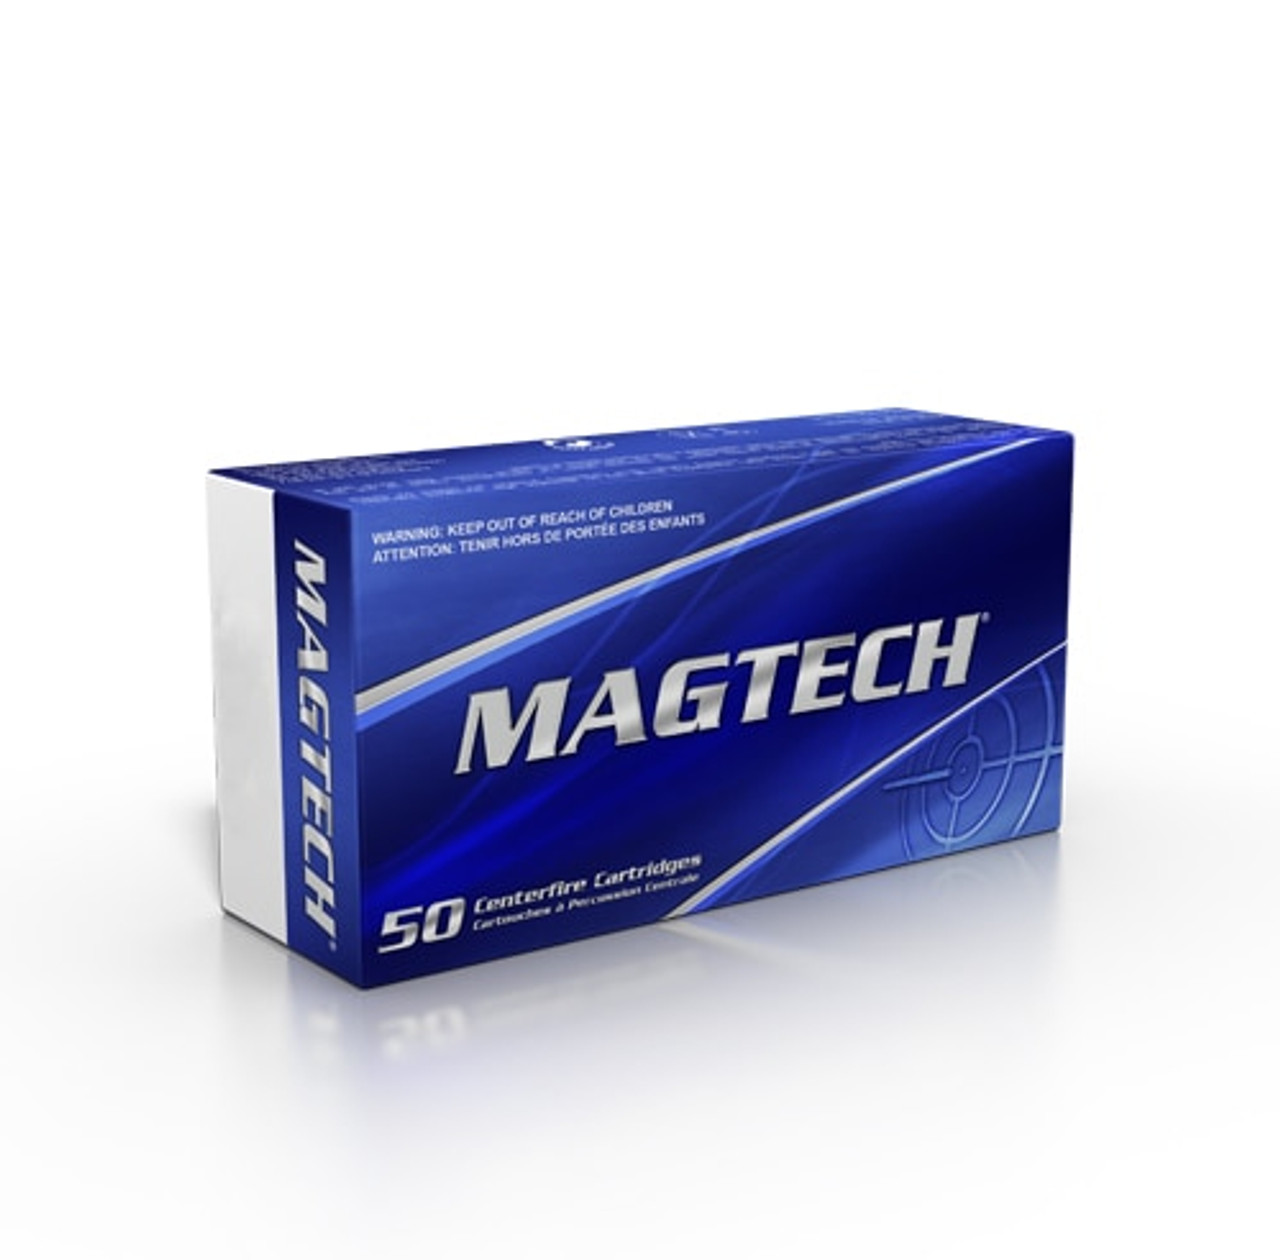 Magtech 10mm Ammunition 10B 180 Grain Jacketed Hollow Point 50 Rounds